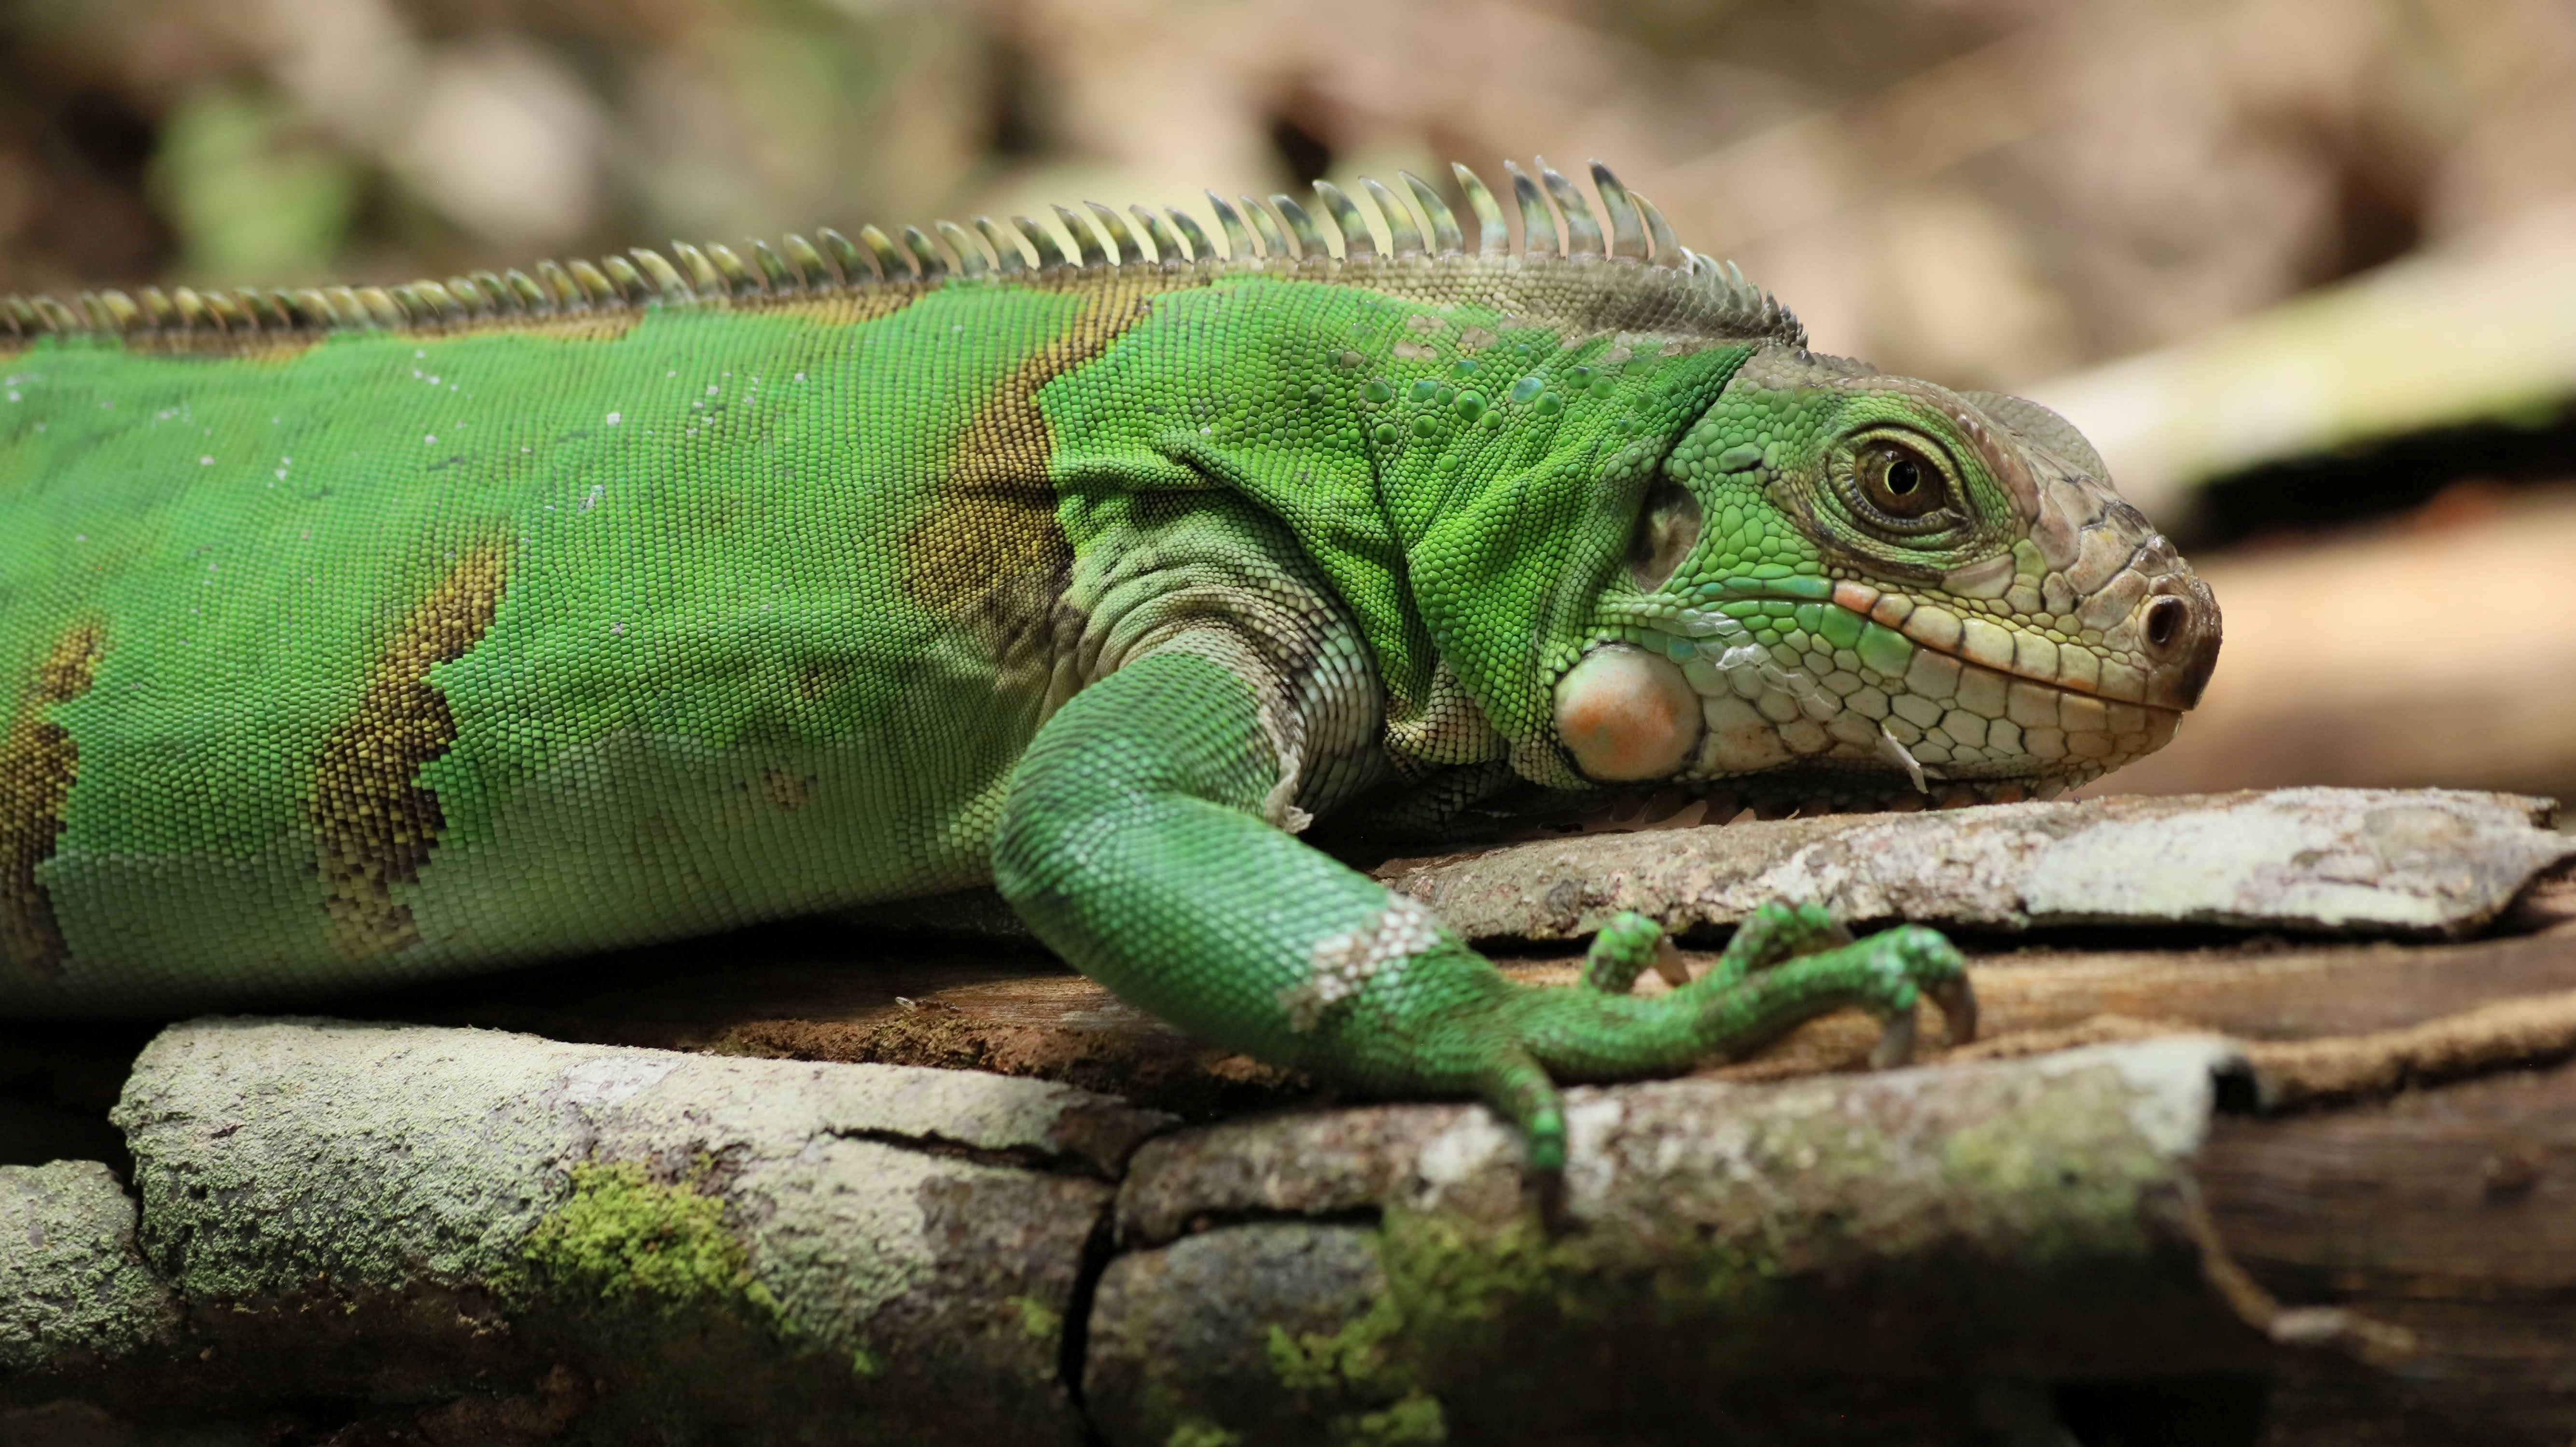 A iguana is pictured after it was released along with other animals, which were seized and rehabilitated by authorities fighting wildlife trafficking, into lagoons and forests in Colombia's Meta province, in Puerto Lopez, Colombia July 24, 2021. Picture taken July 24, 2021. Bogota's city environment office/Handout via REUTERS